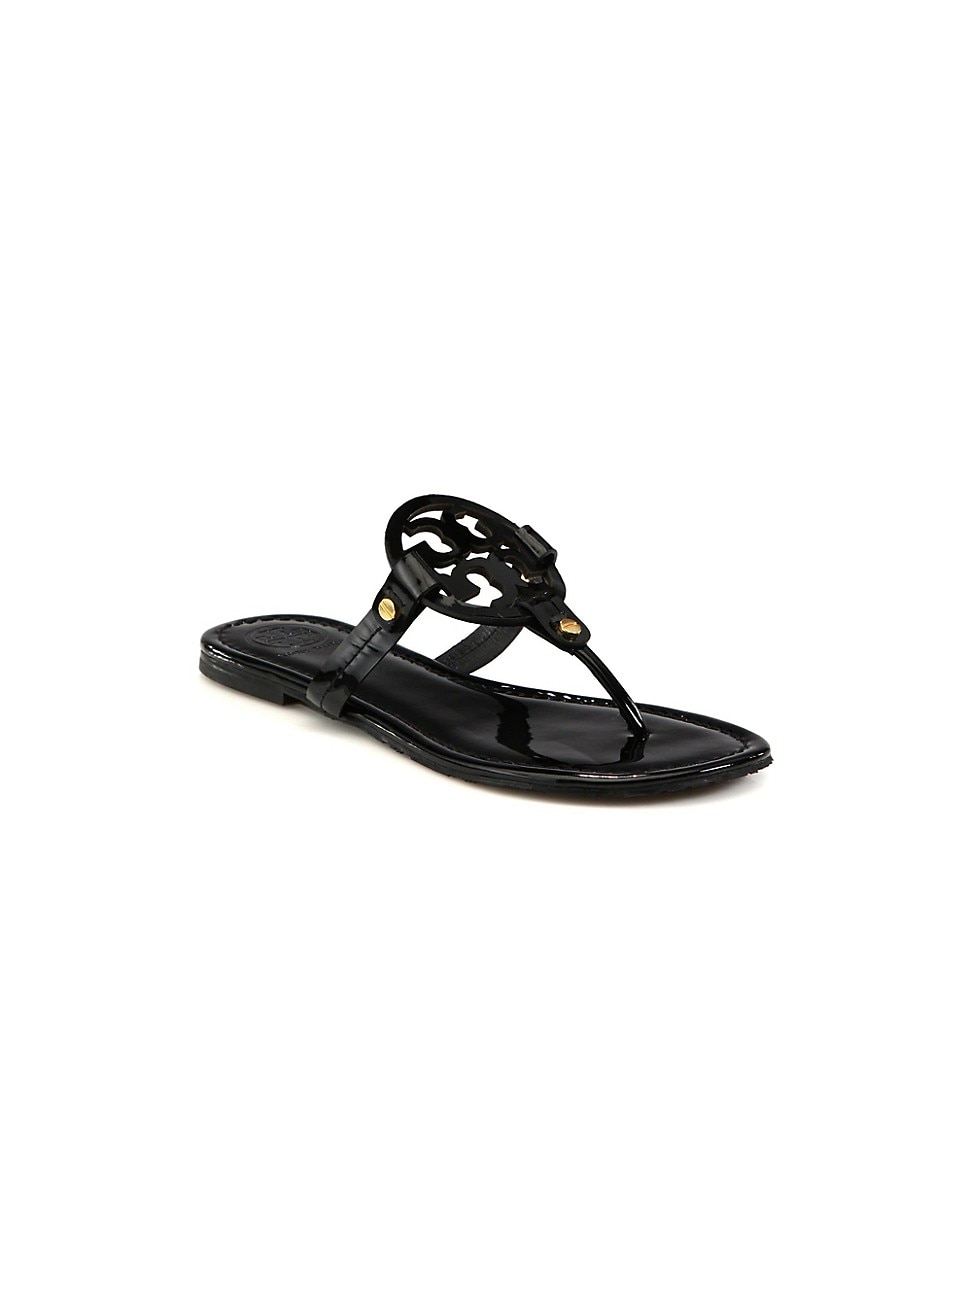 Tory Burch WOMEN'S MILLER PATENT LEATHER THONG SANDALS